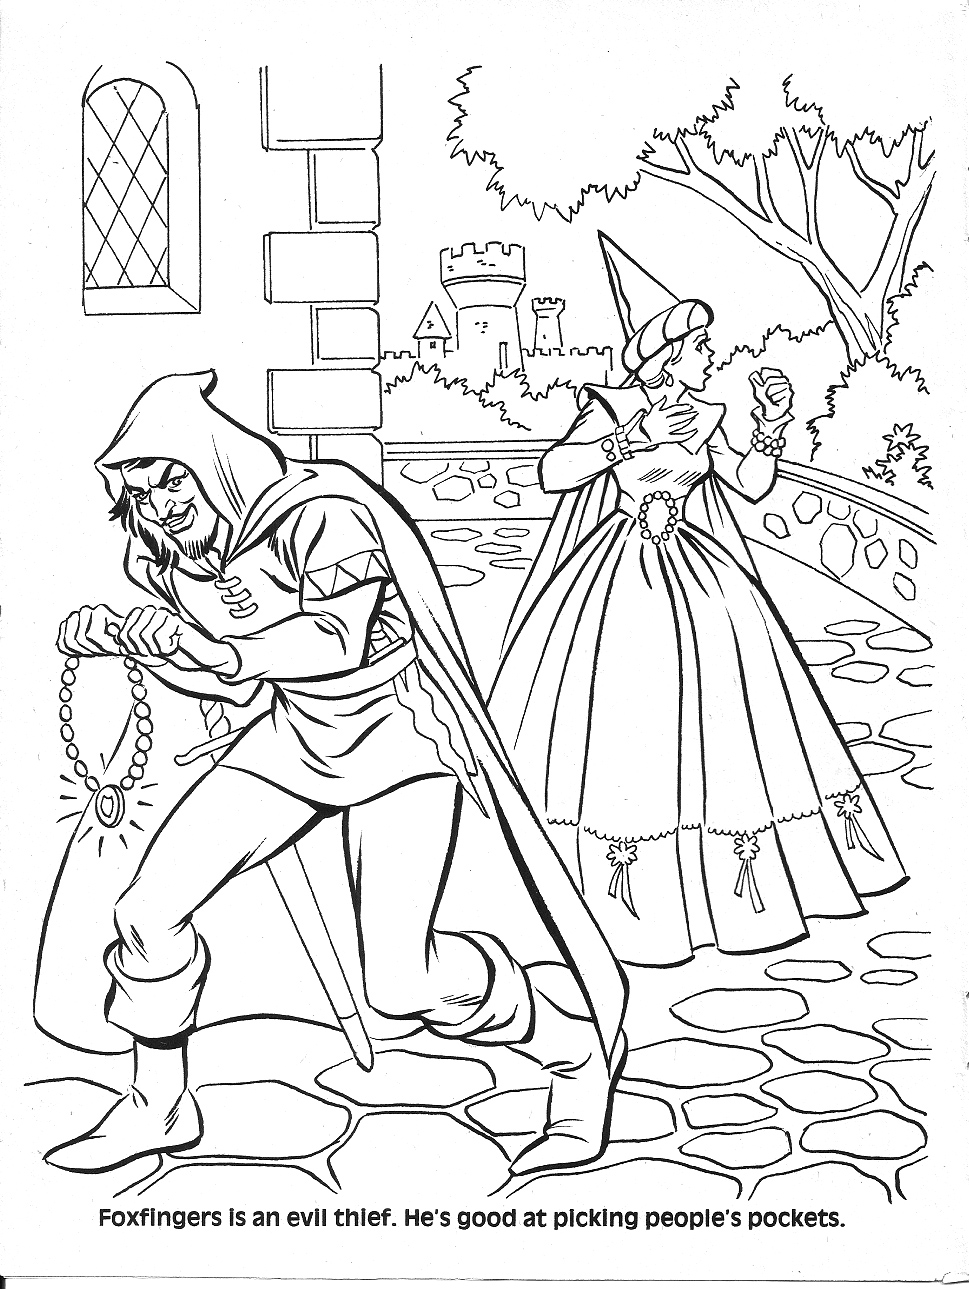 dungeons and dragons coloring pages - photo #25